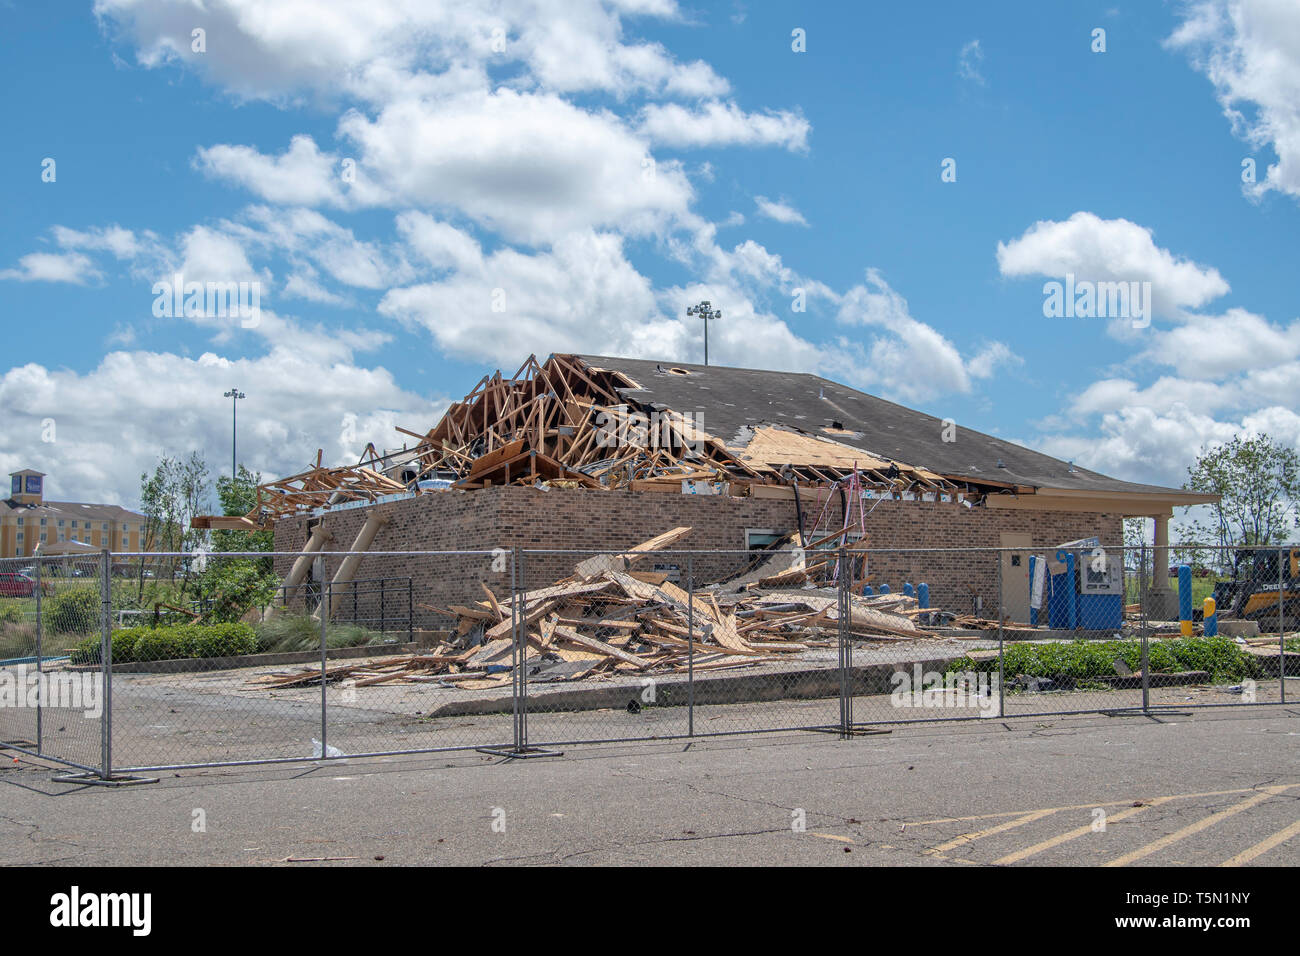 RUSTON, LA., U.S.A., APRIL 25, 2019: Two fatalities and heavy property damage are results of a powerful tornado, which struck this north Louisiana tow - Stock Image